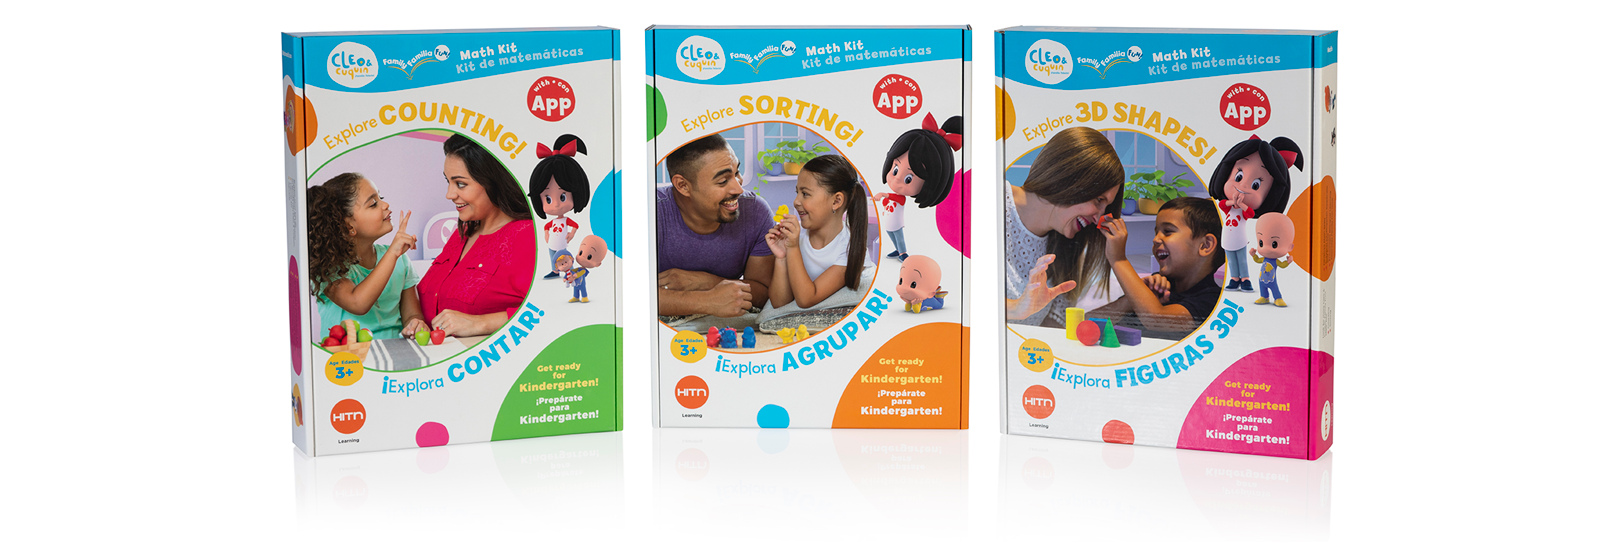 HITN Launches Educational Kits Inspired by the Fun Youtube Characters Cleo & Cuquin